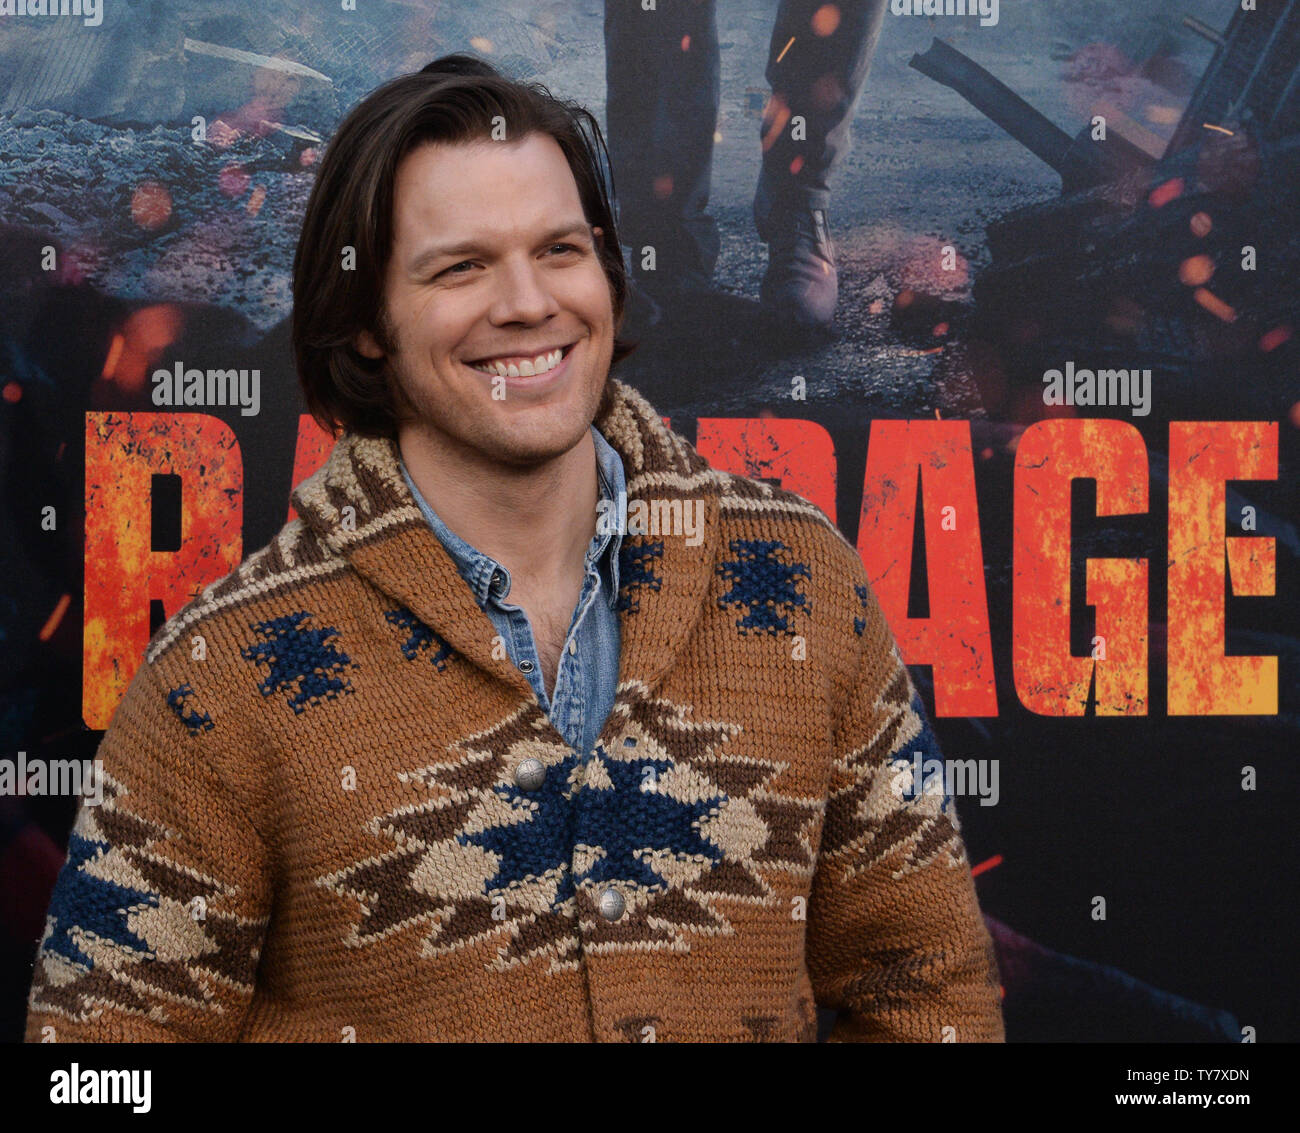 Cast member Jake Lacy attends the premiere of the sci-fi